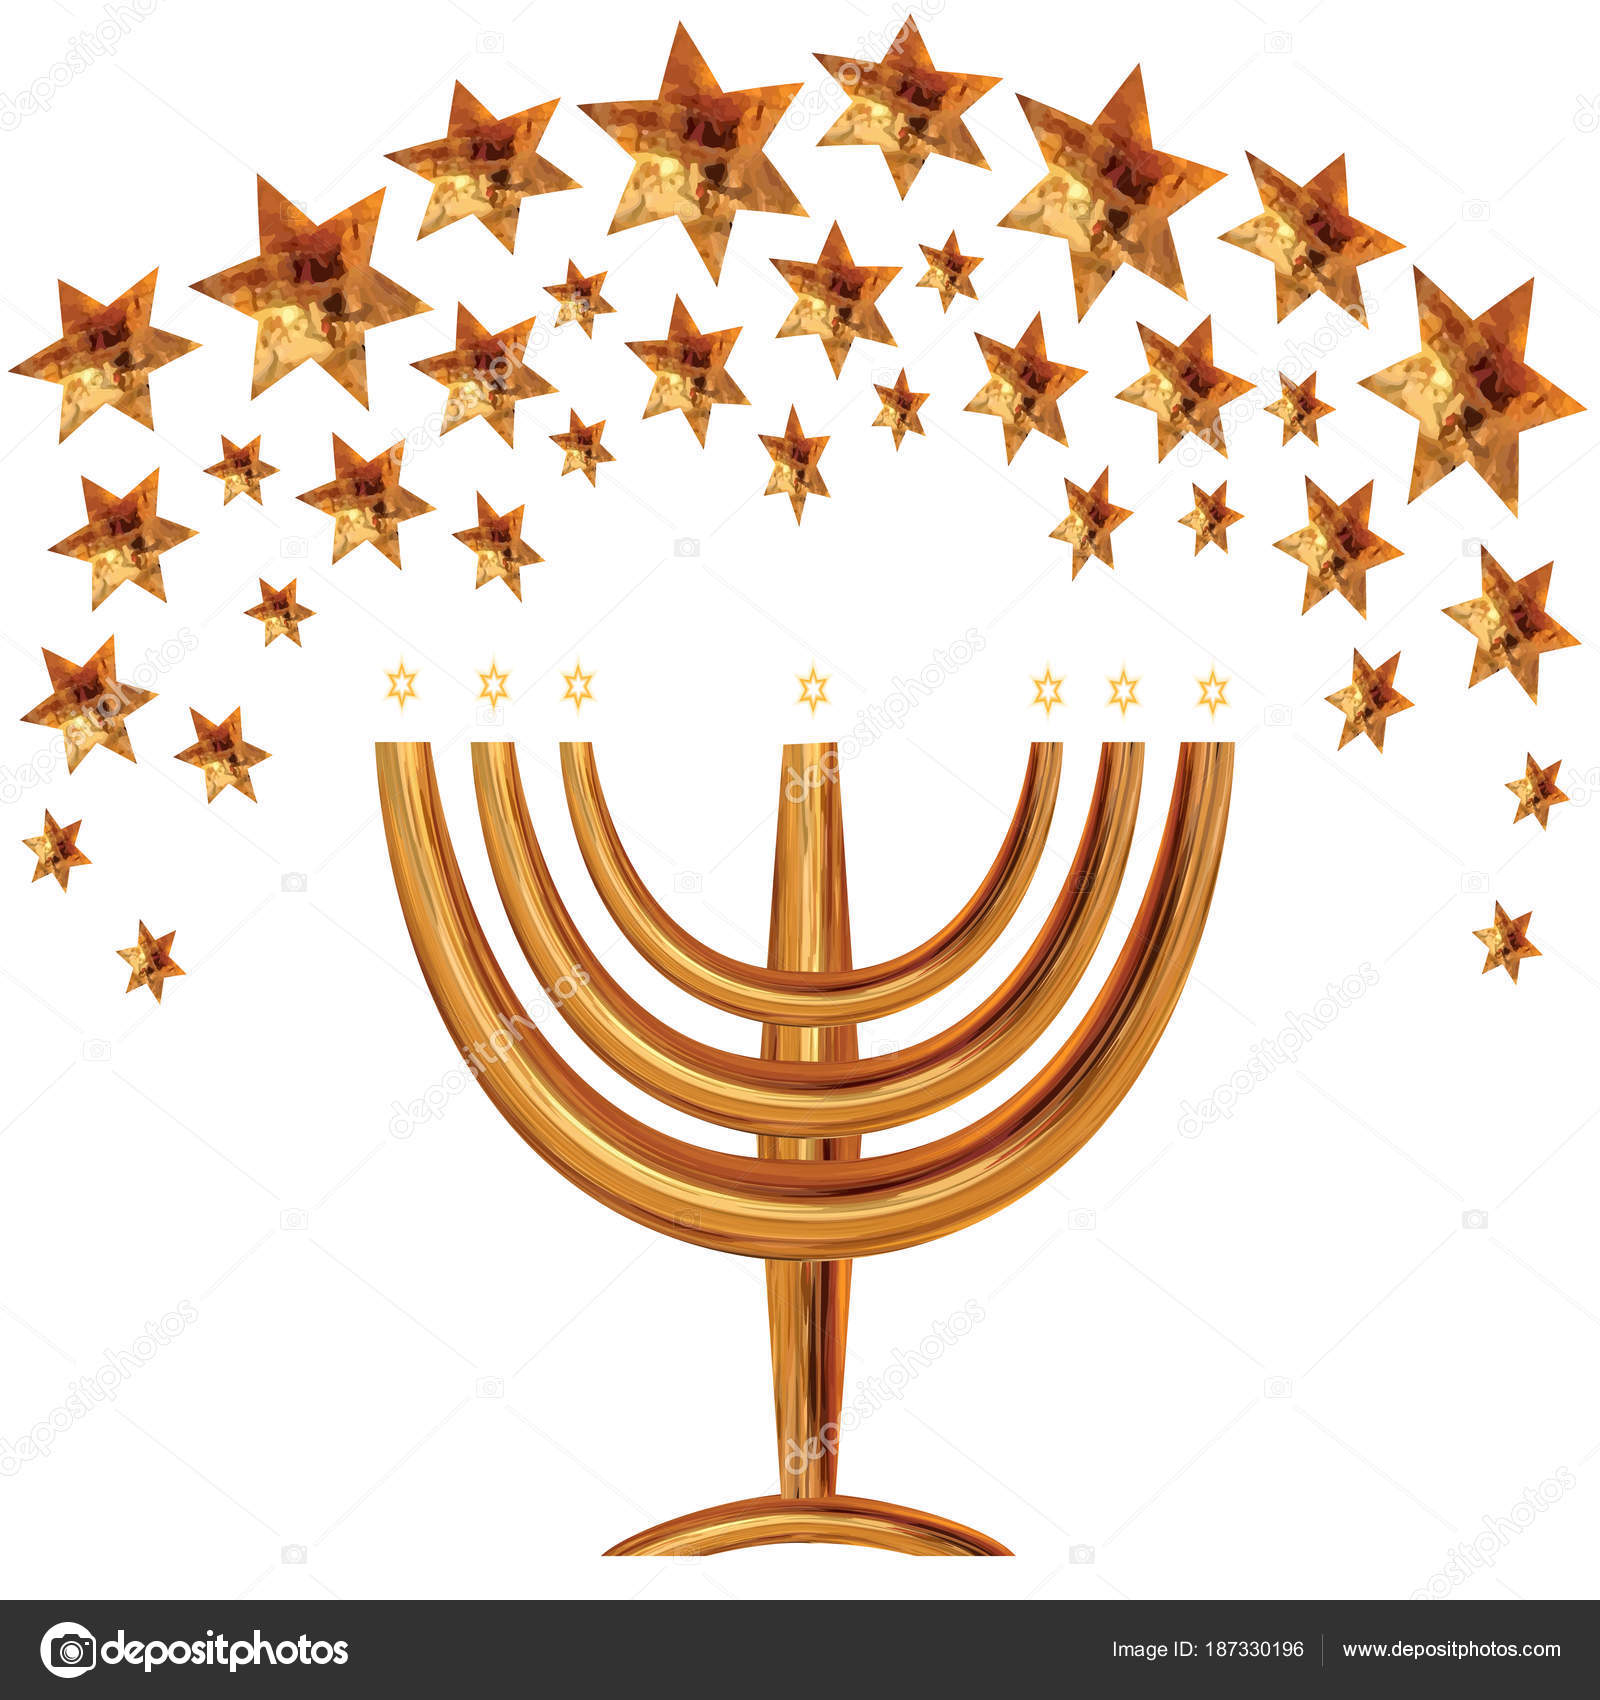 Greeting card invitation traditional jewish wedding richly decorated a greeting card and an invitation to a traditional jewish wedding in a richly decorated gold hupa from the stars of david the golden menorah m4hsunfo